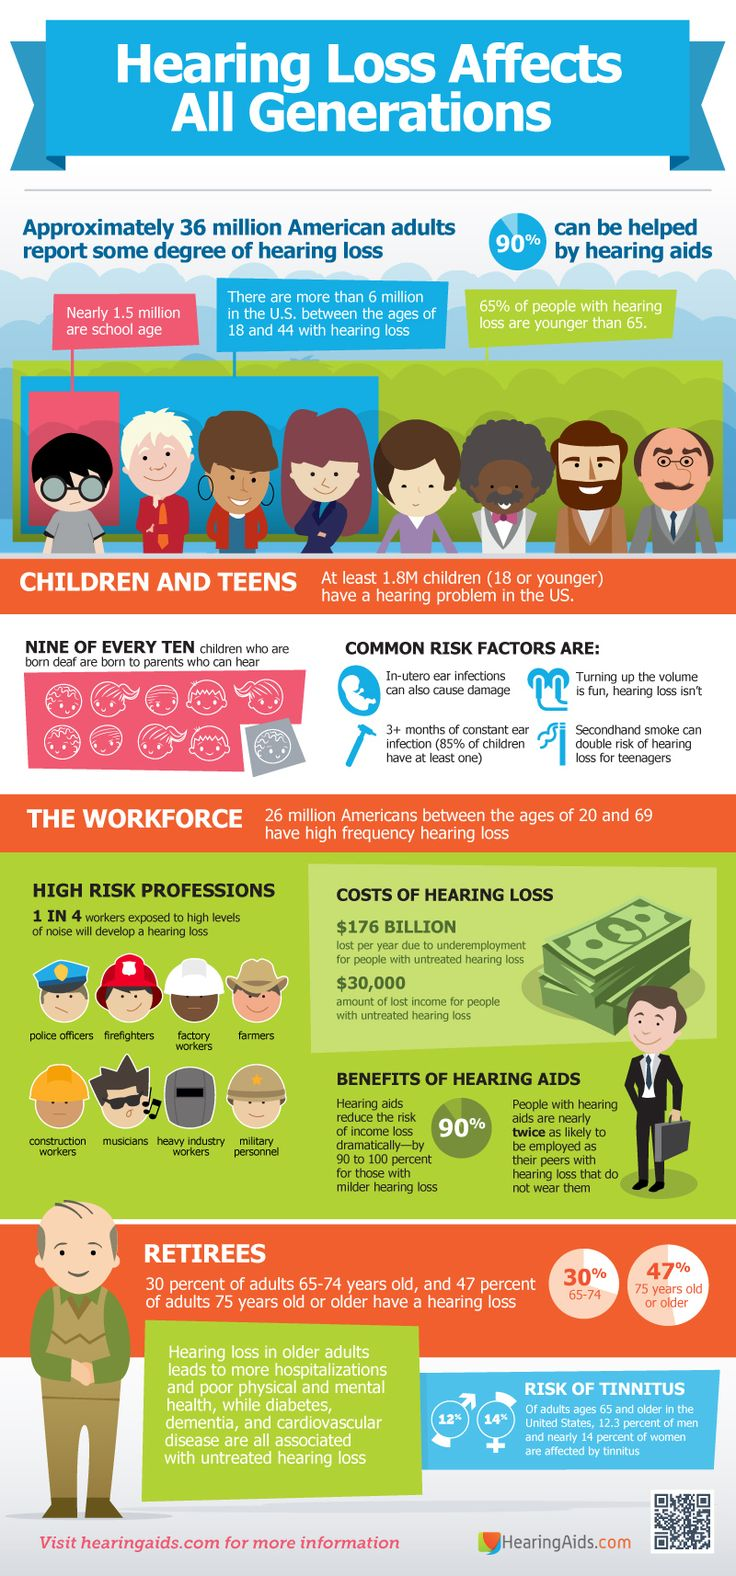 Hearing Loss Affects All Generations [INFOGRAPHIC]#hearingloss